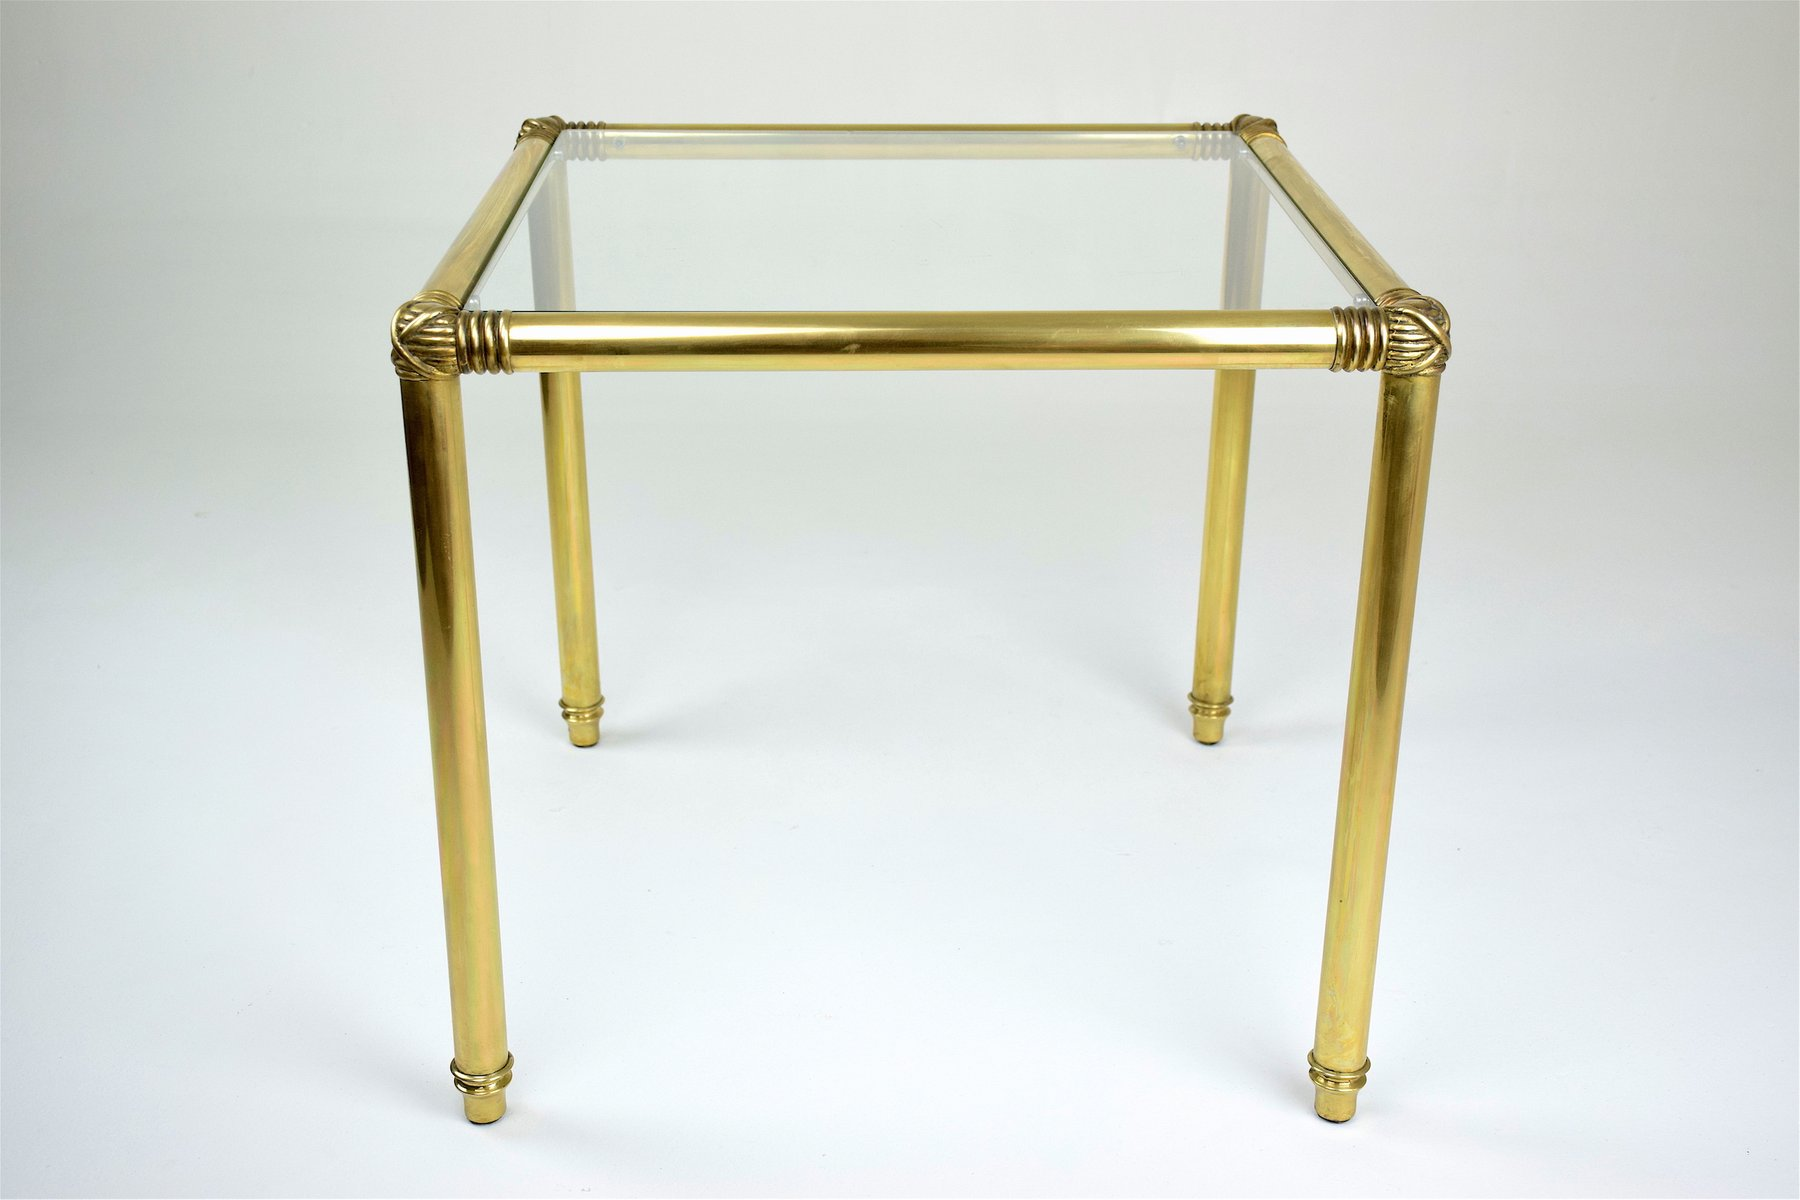 Vintage Polished Brass Coffee Table 1970s for sale at Pamono